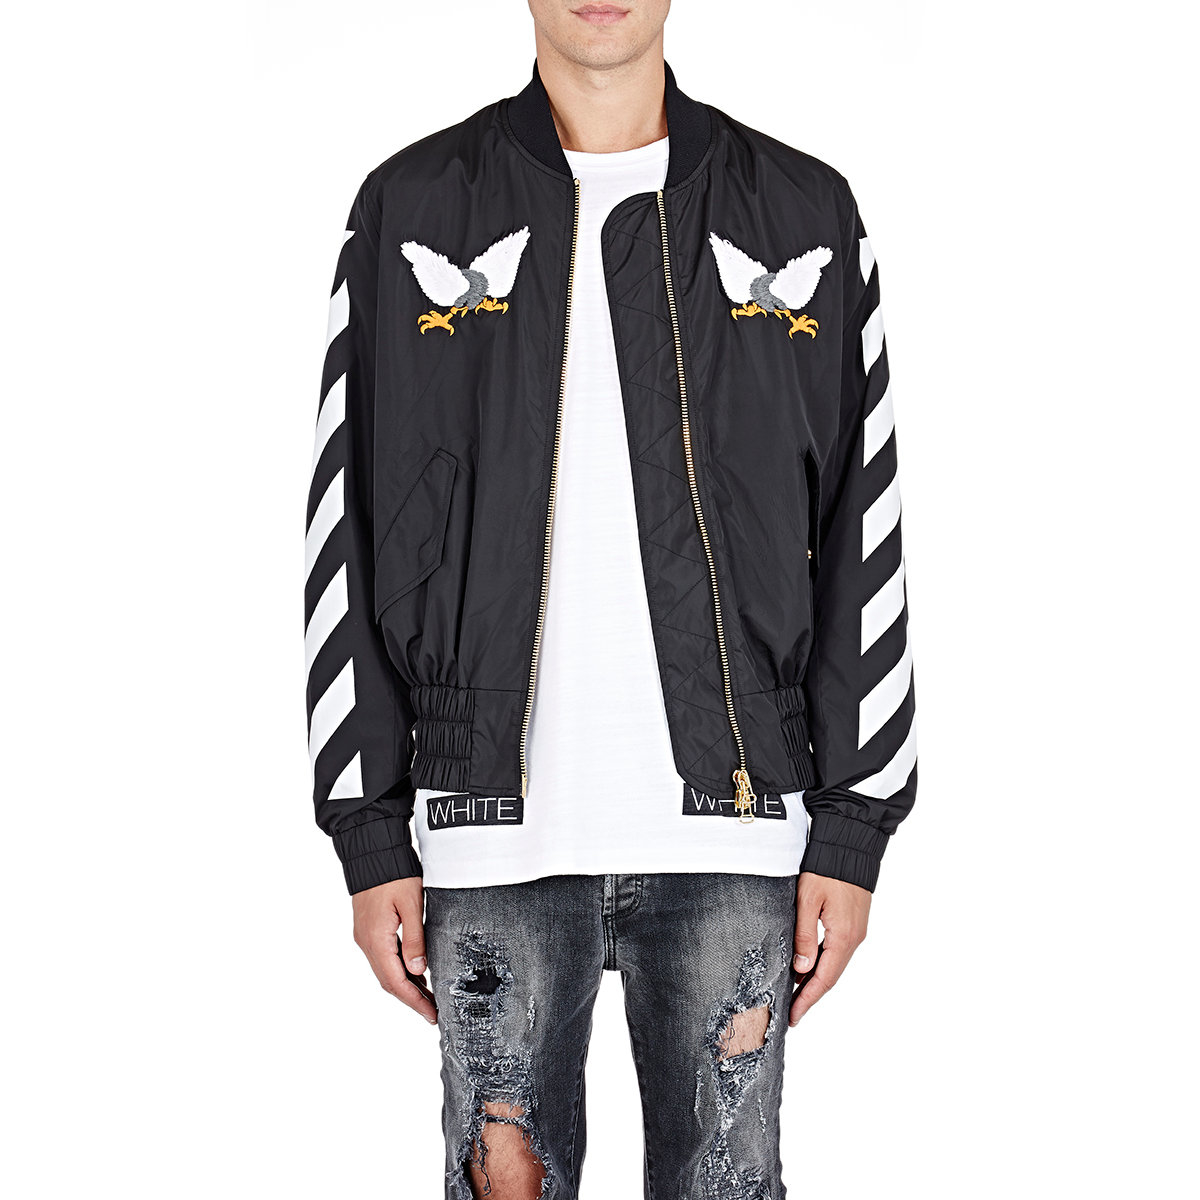 lyst off white c o virgil abloh eagle embroidered bomber jacket in black for men. Black Bedroom Furniture Sets. Home Design Ideas